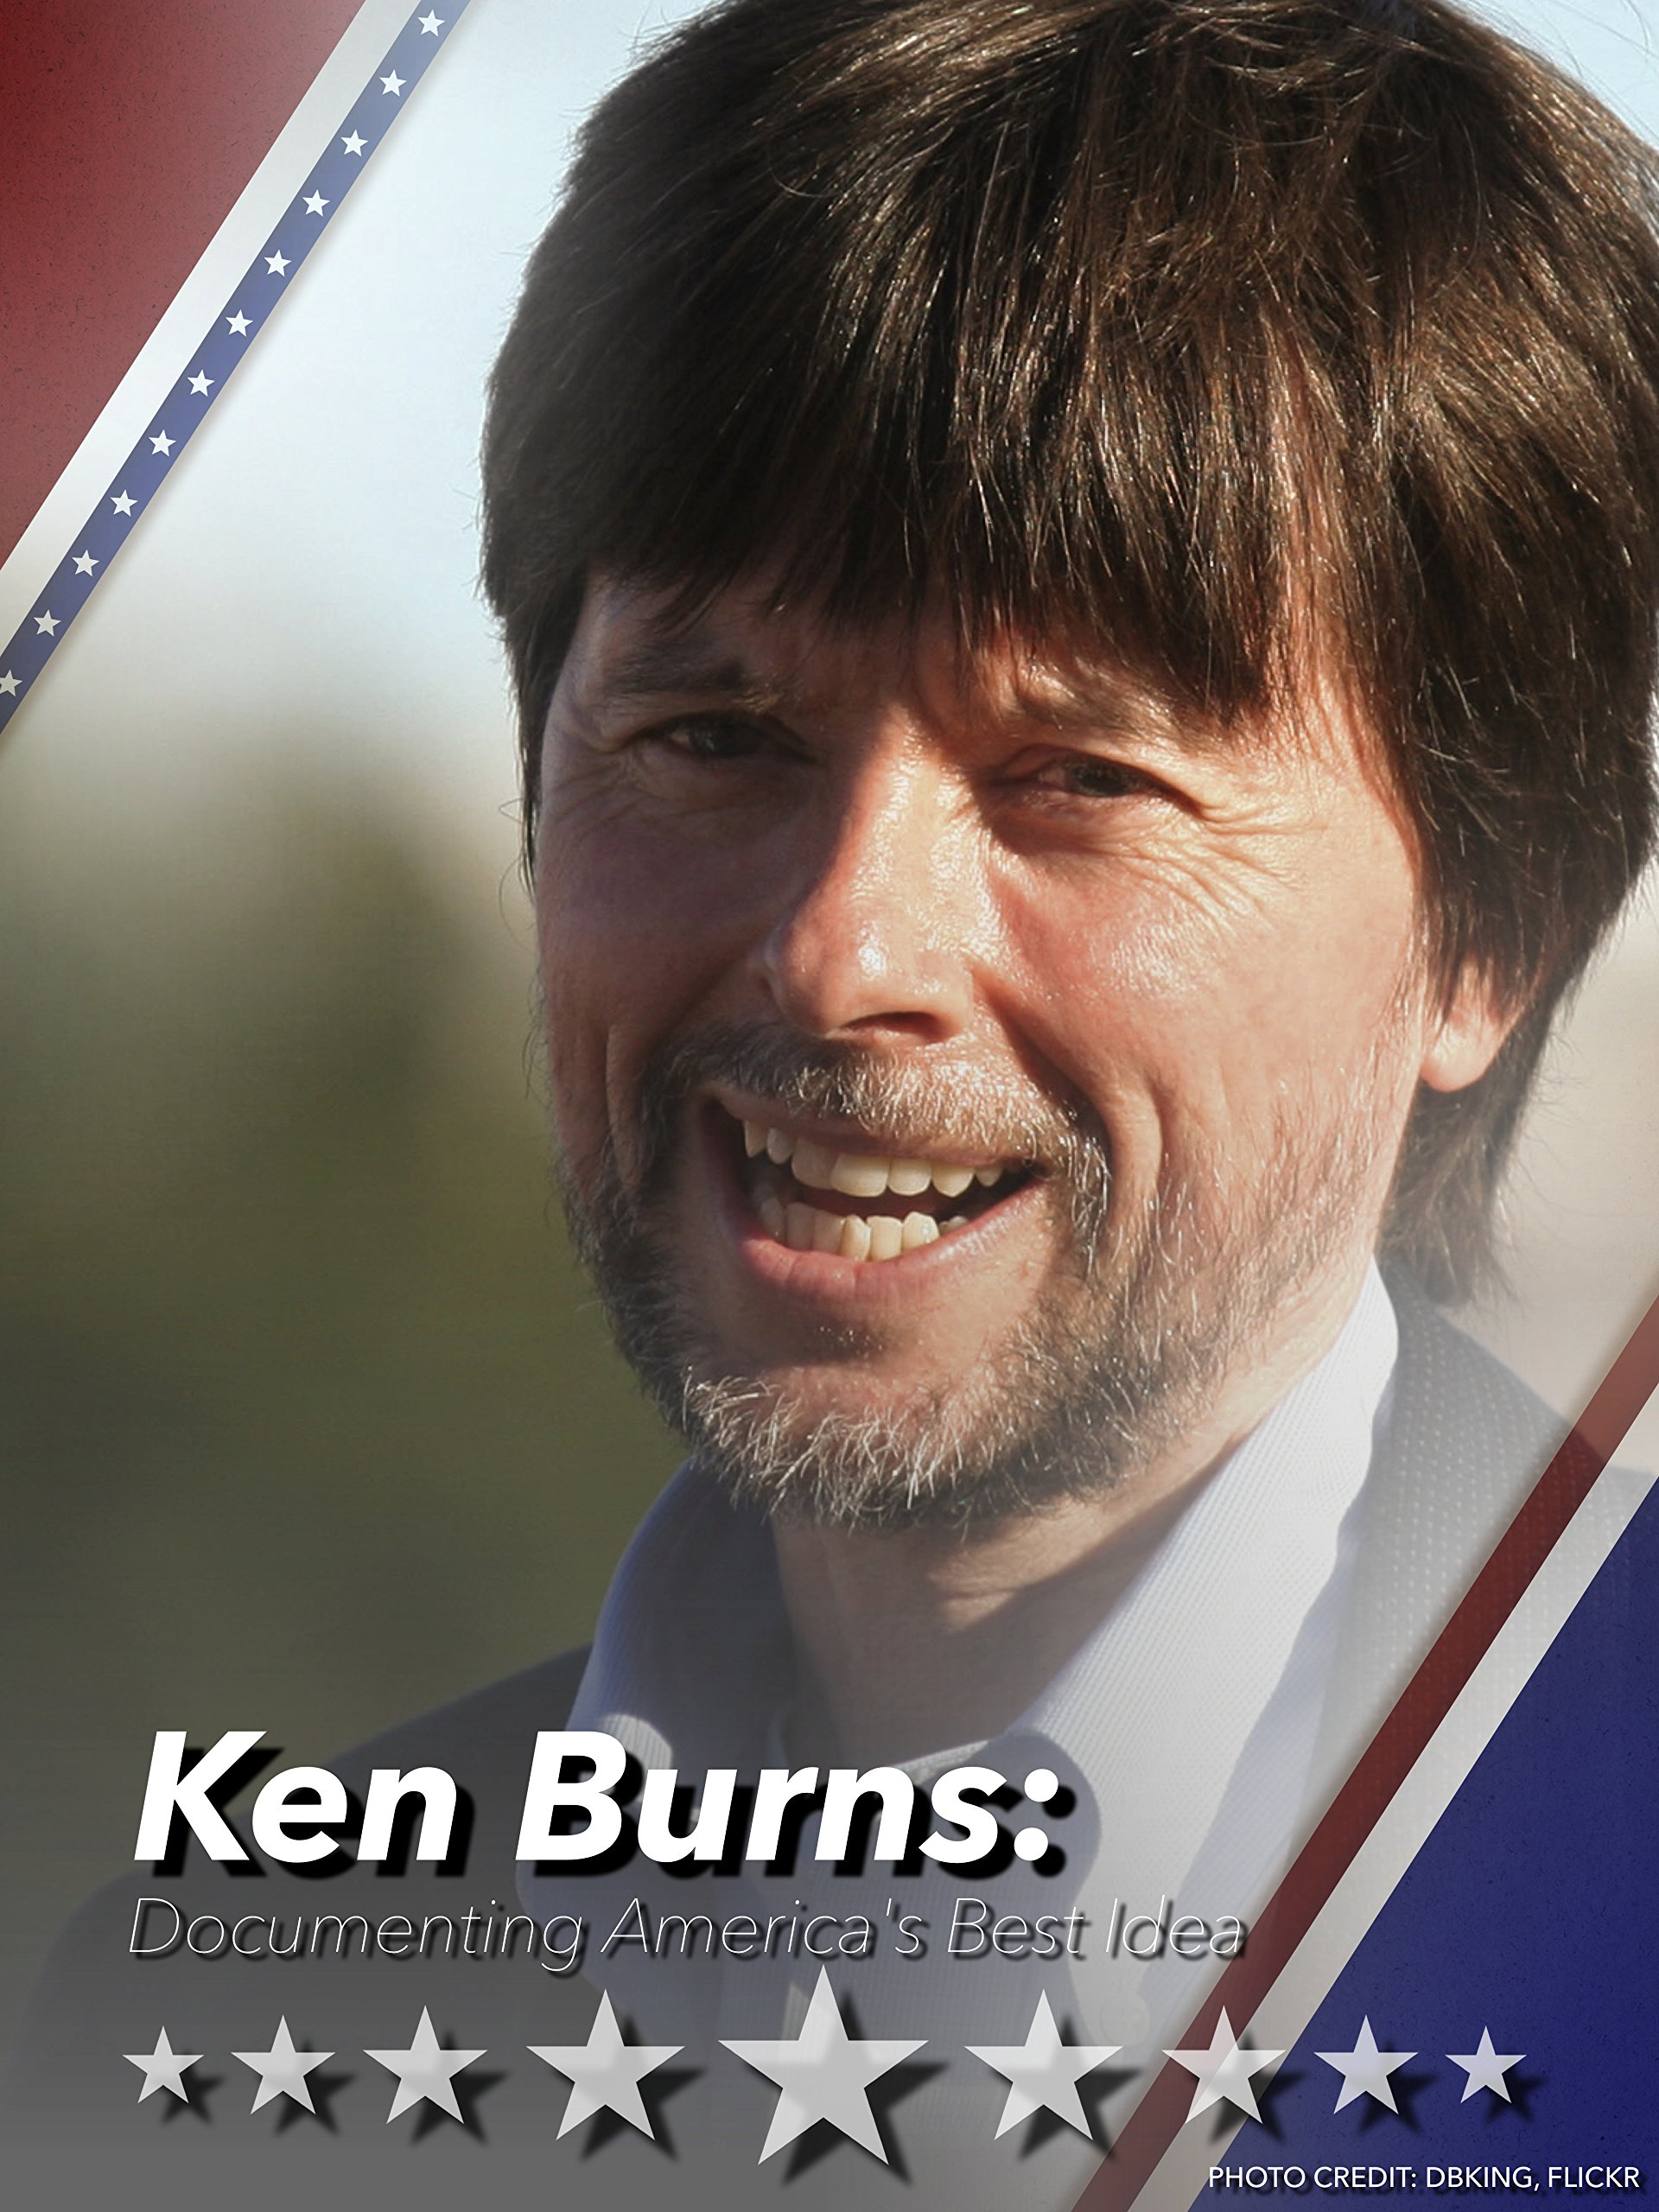 Ken Burns: Documenting America's Best Idea